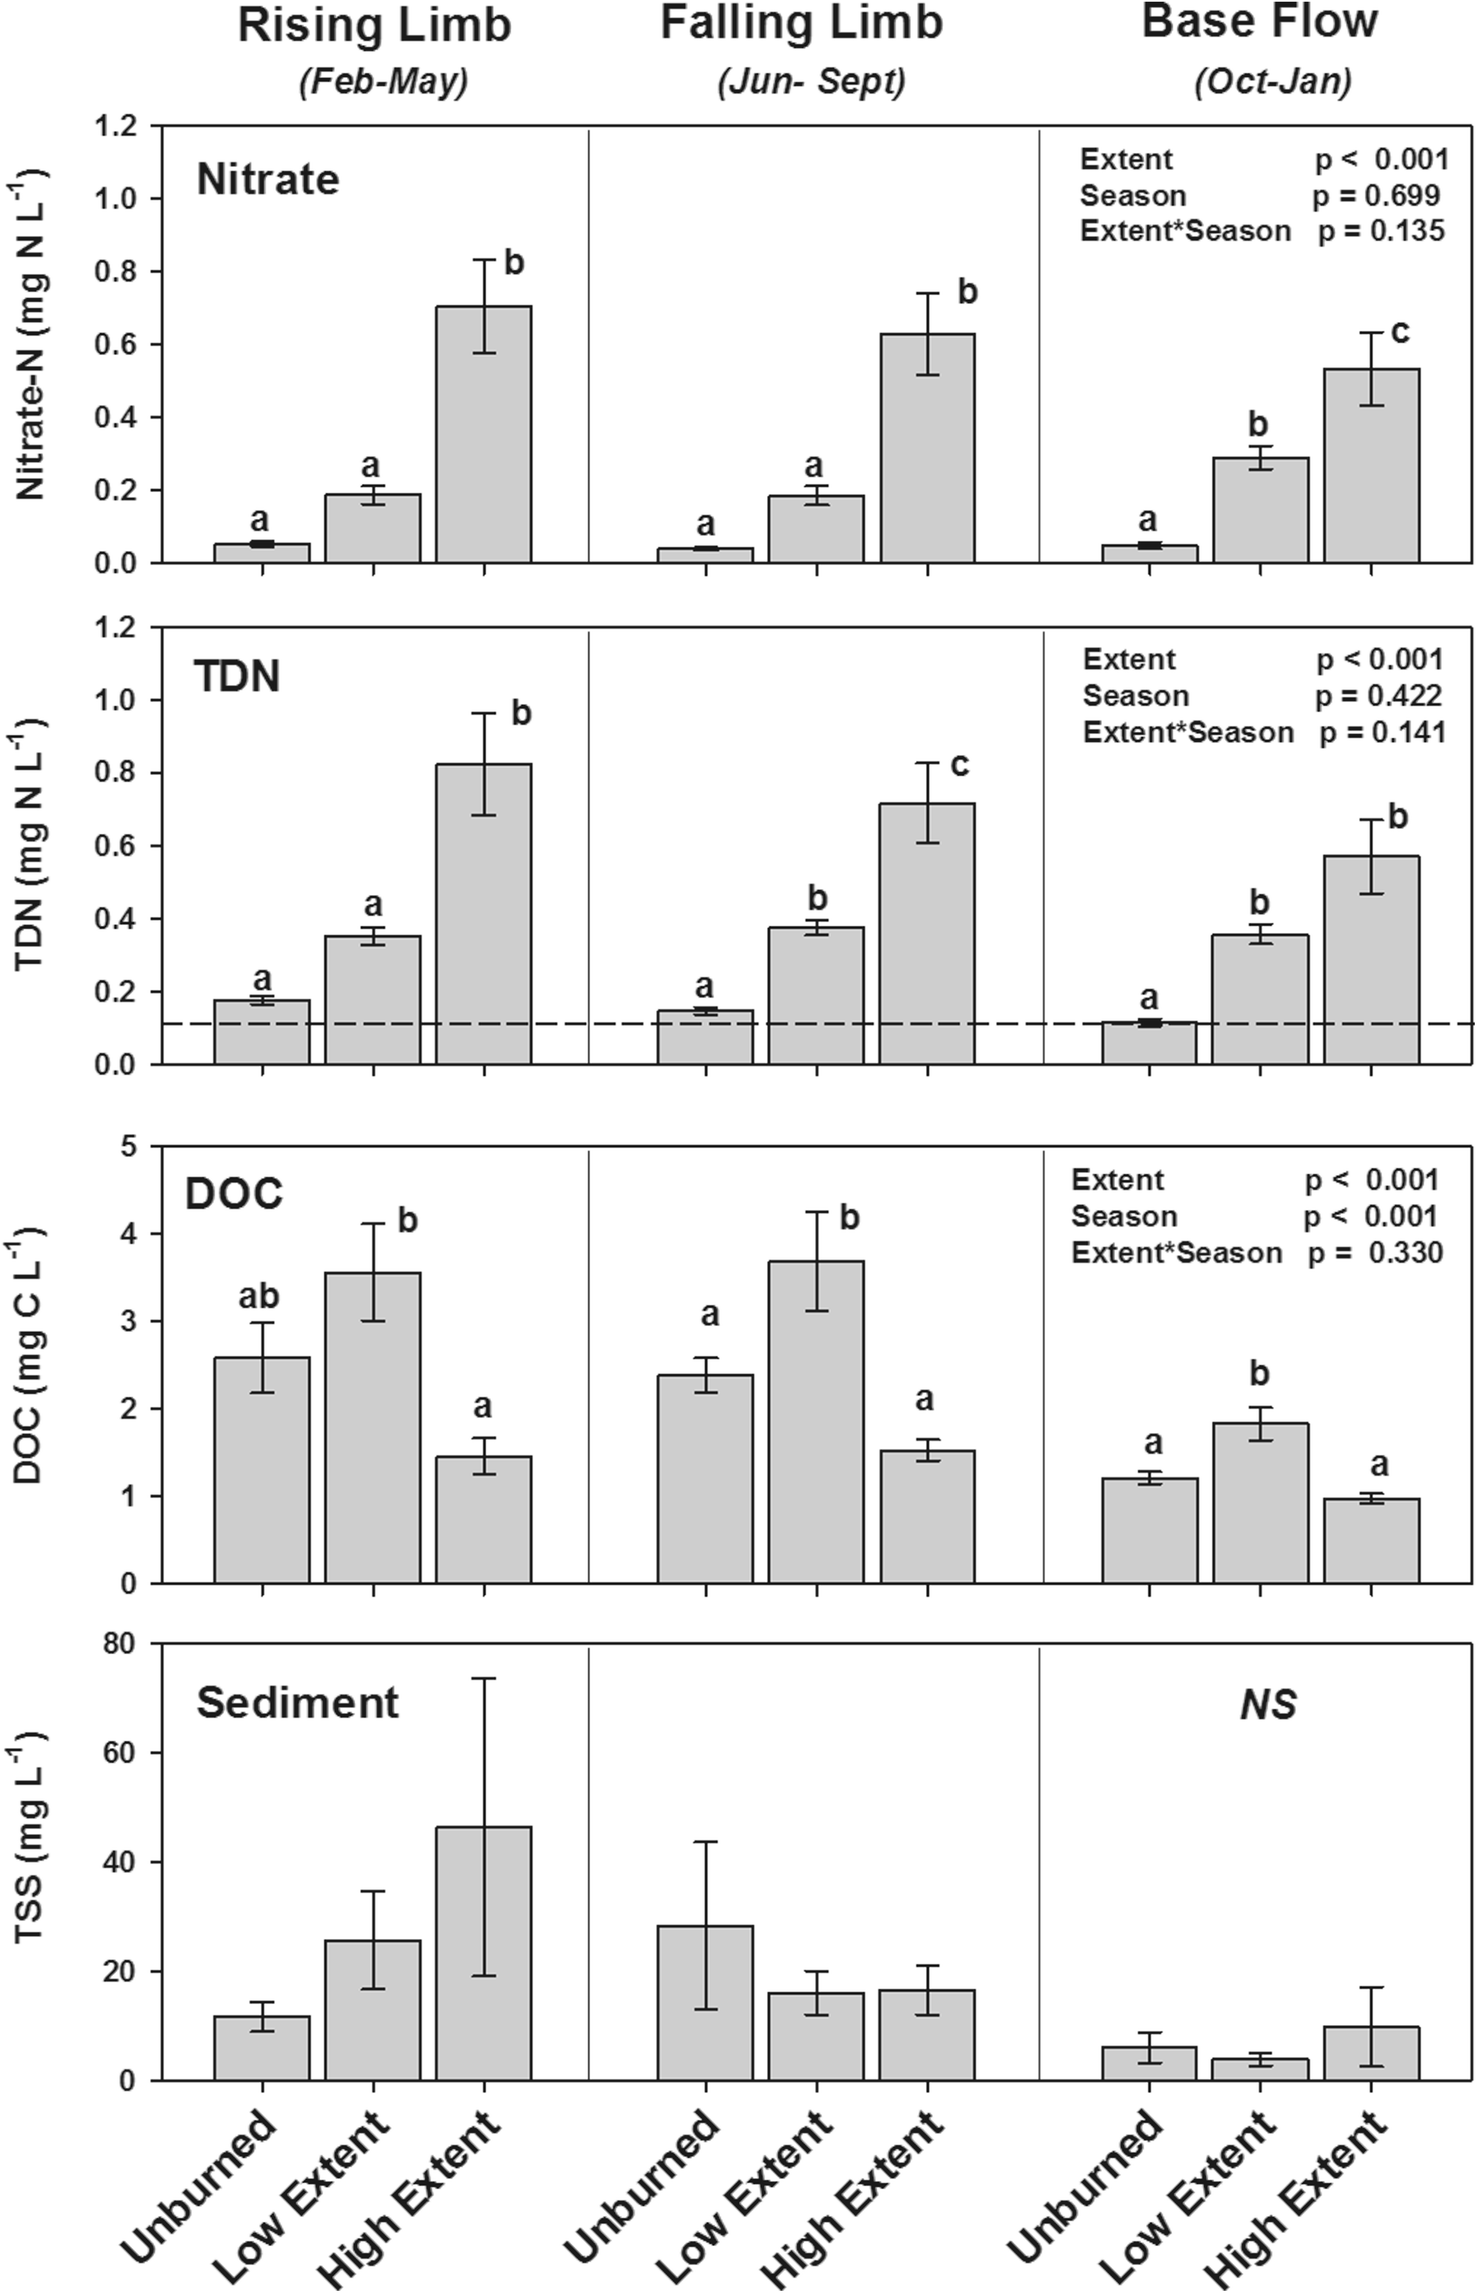 The Legacy of a Severe Wildfire on Stream Nitrogen and